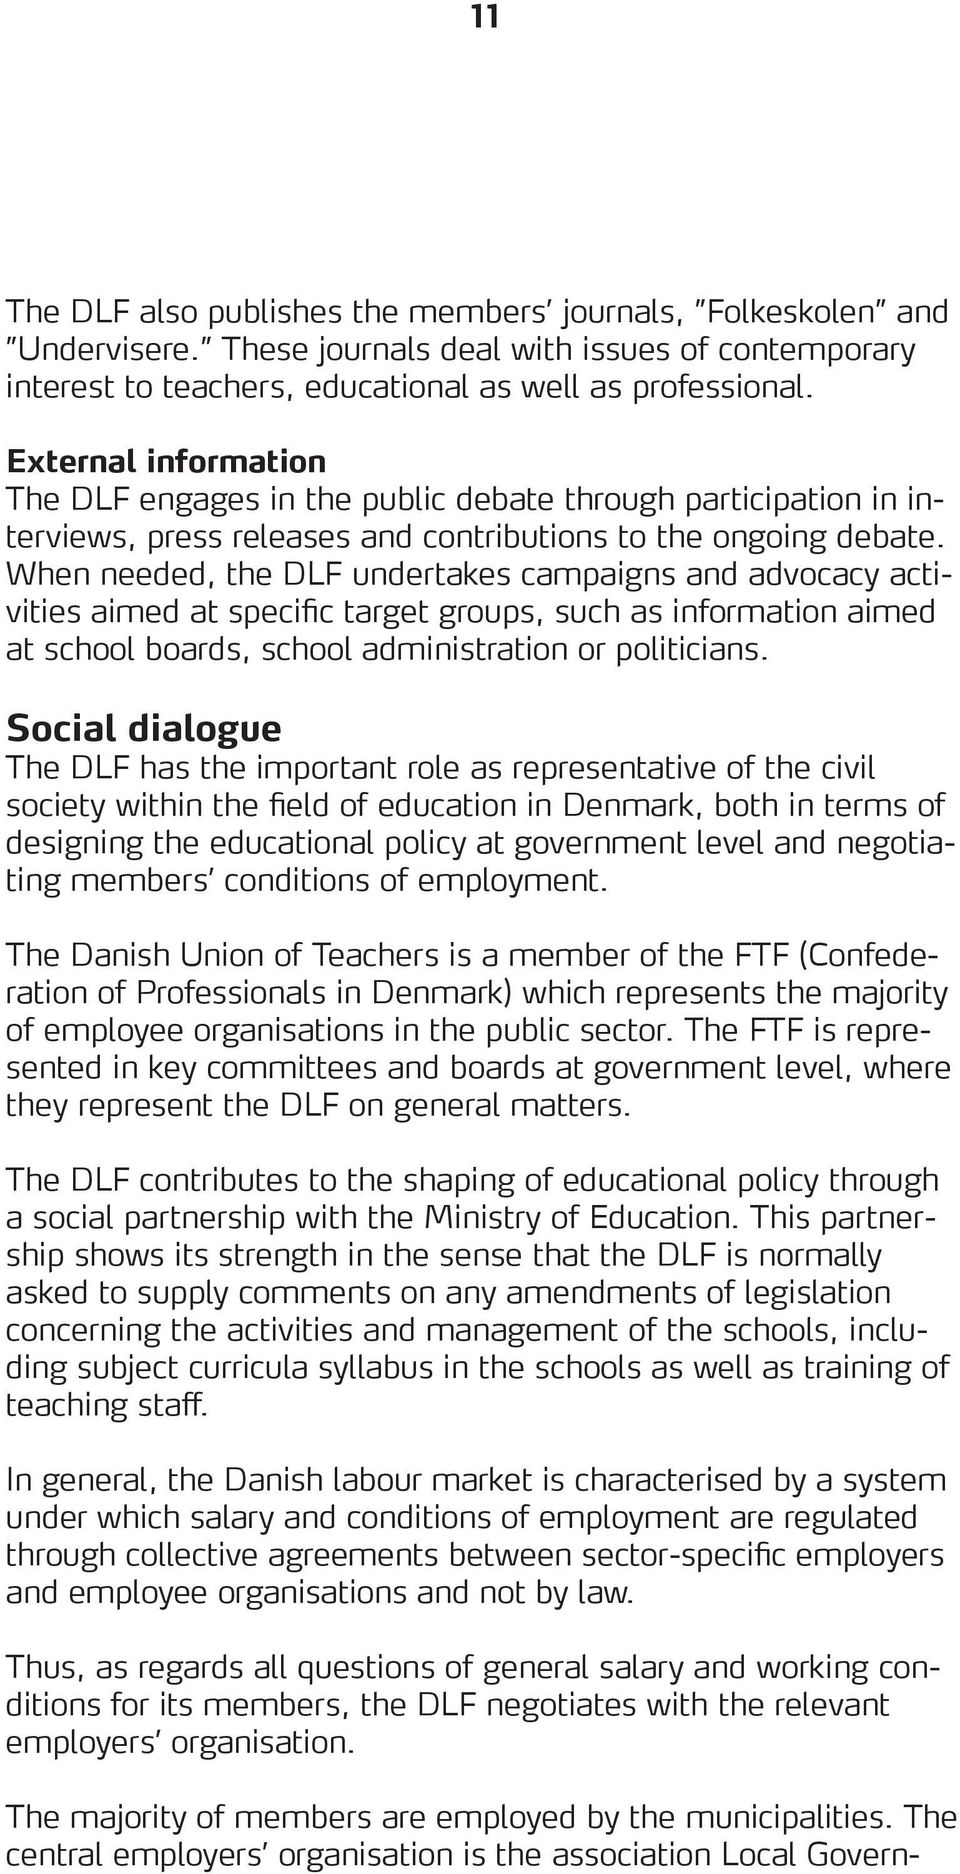 When needed, the DLF undertakes campaigns and advocacy activities aimed at specific target groups, such as information aimed at school boards, school administration or politicians.